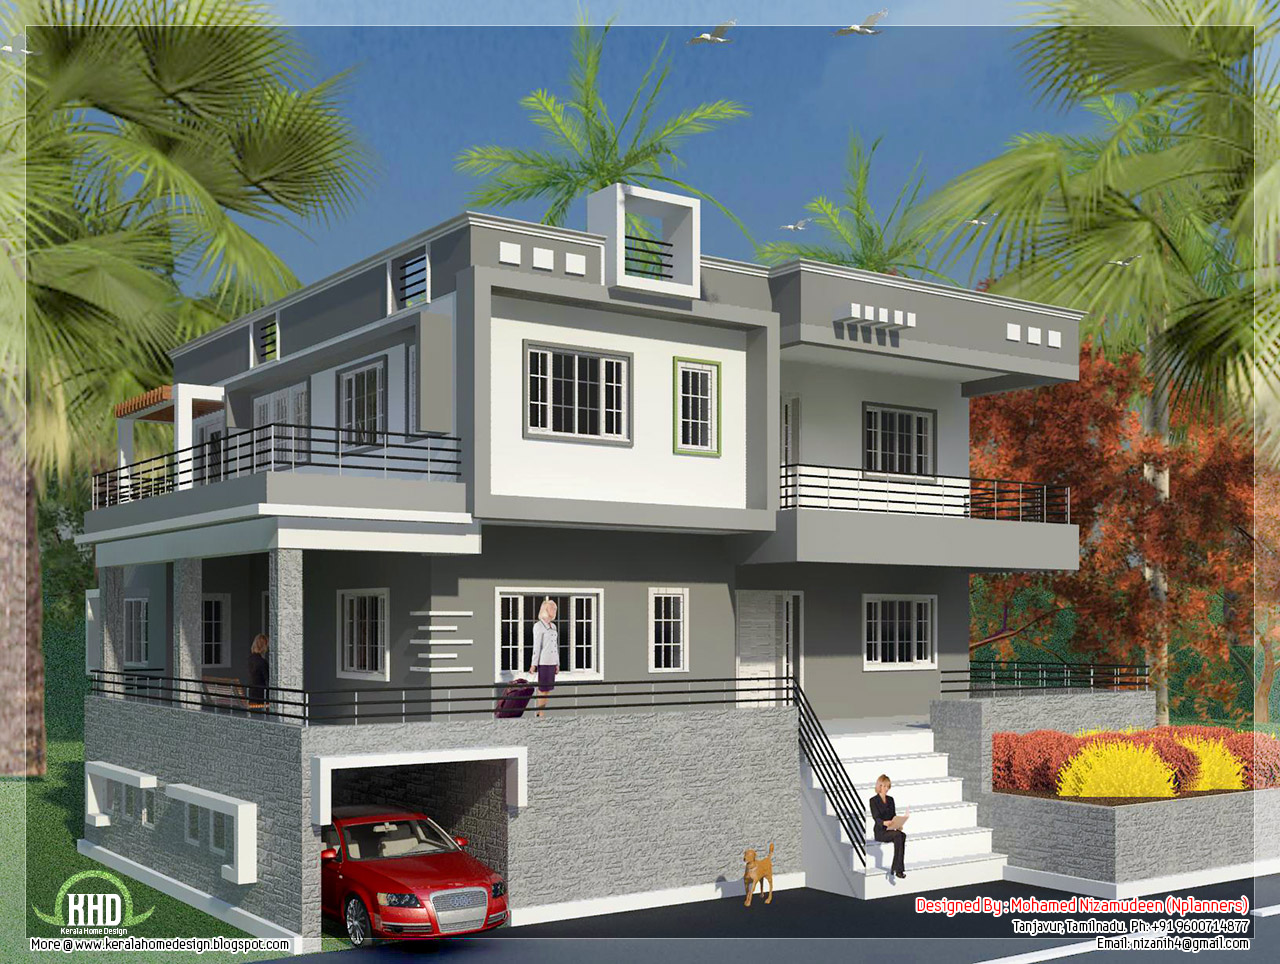 North indian style minimalist house exterior design for House designs indian style